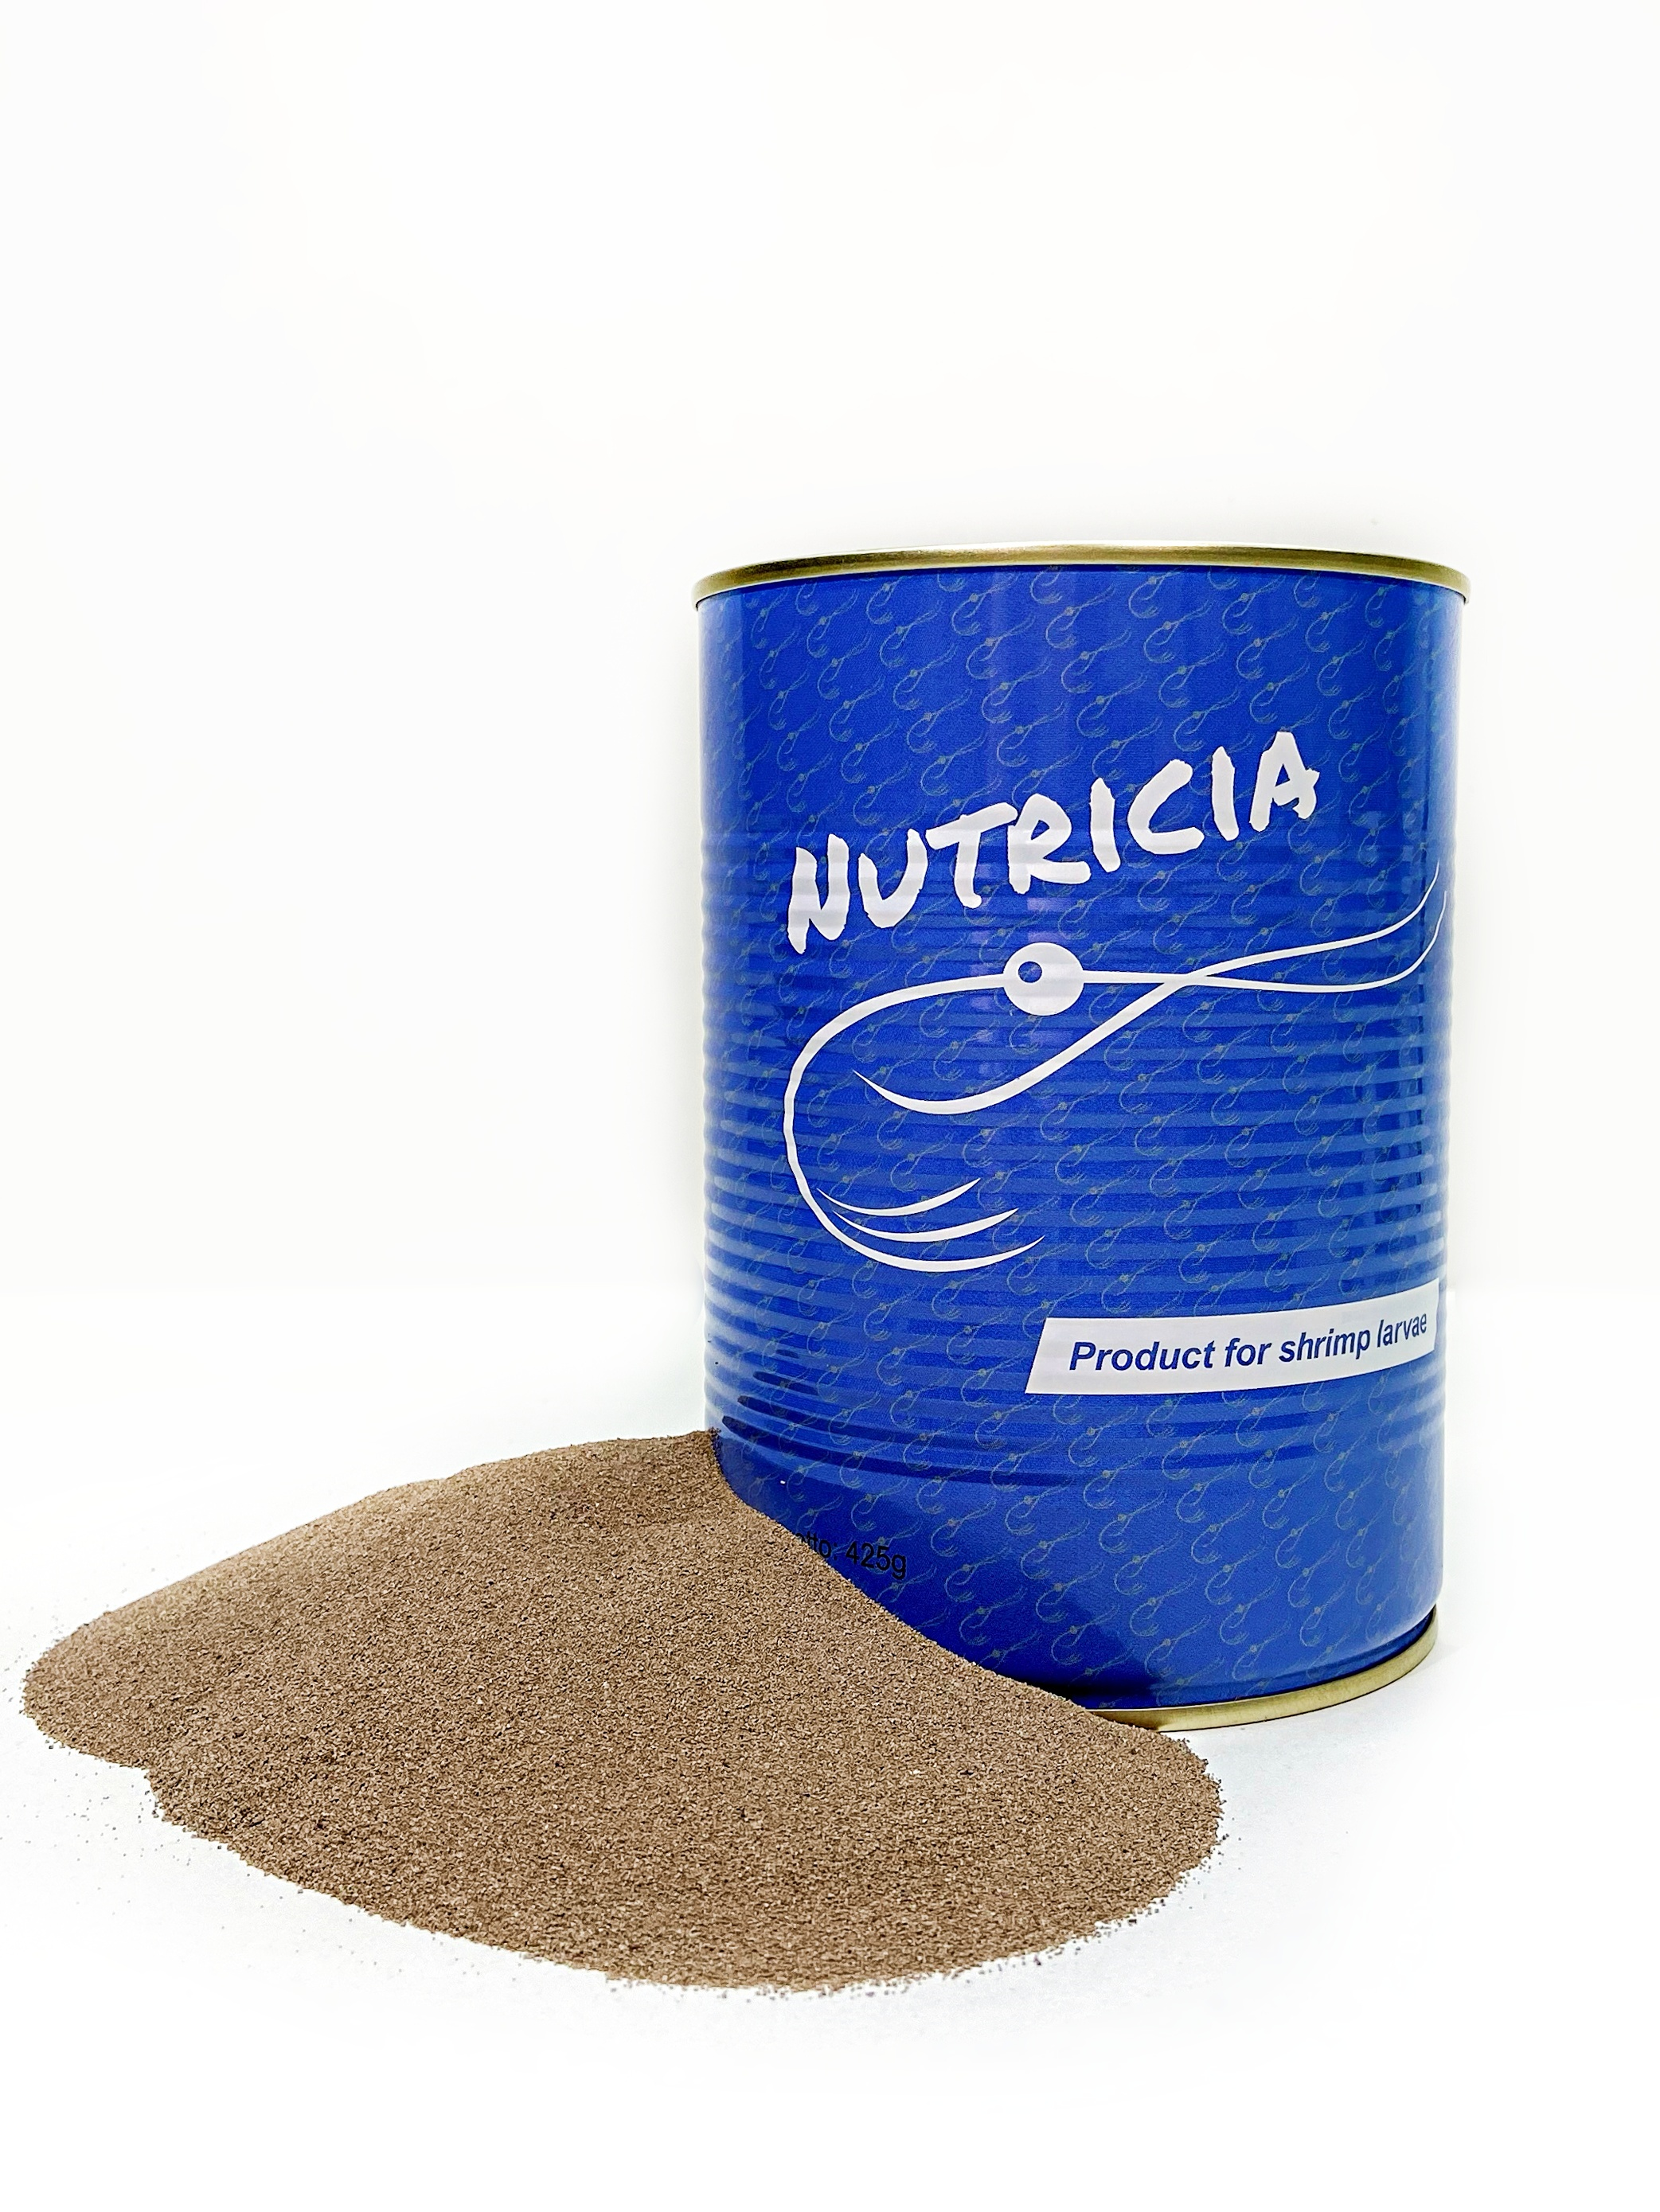 Nutricia HR 60% - Dry Artemia Cysts for Fish and Shrimps Larvae 425 g